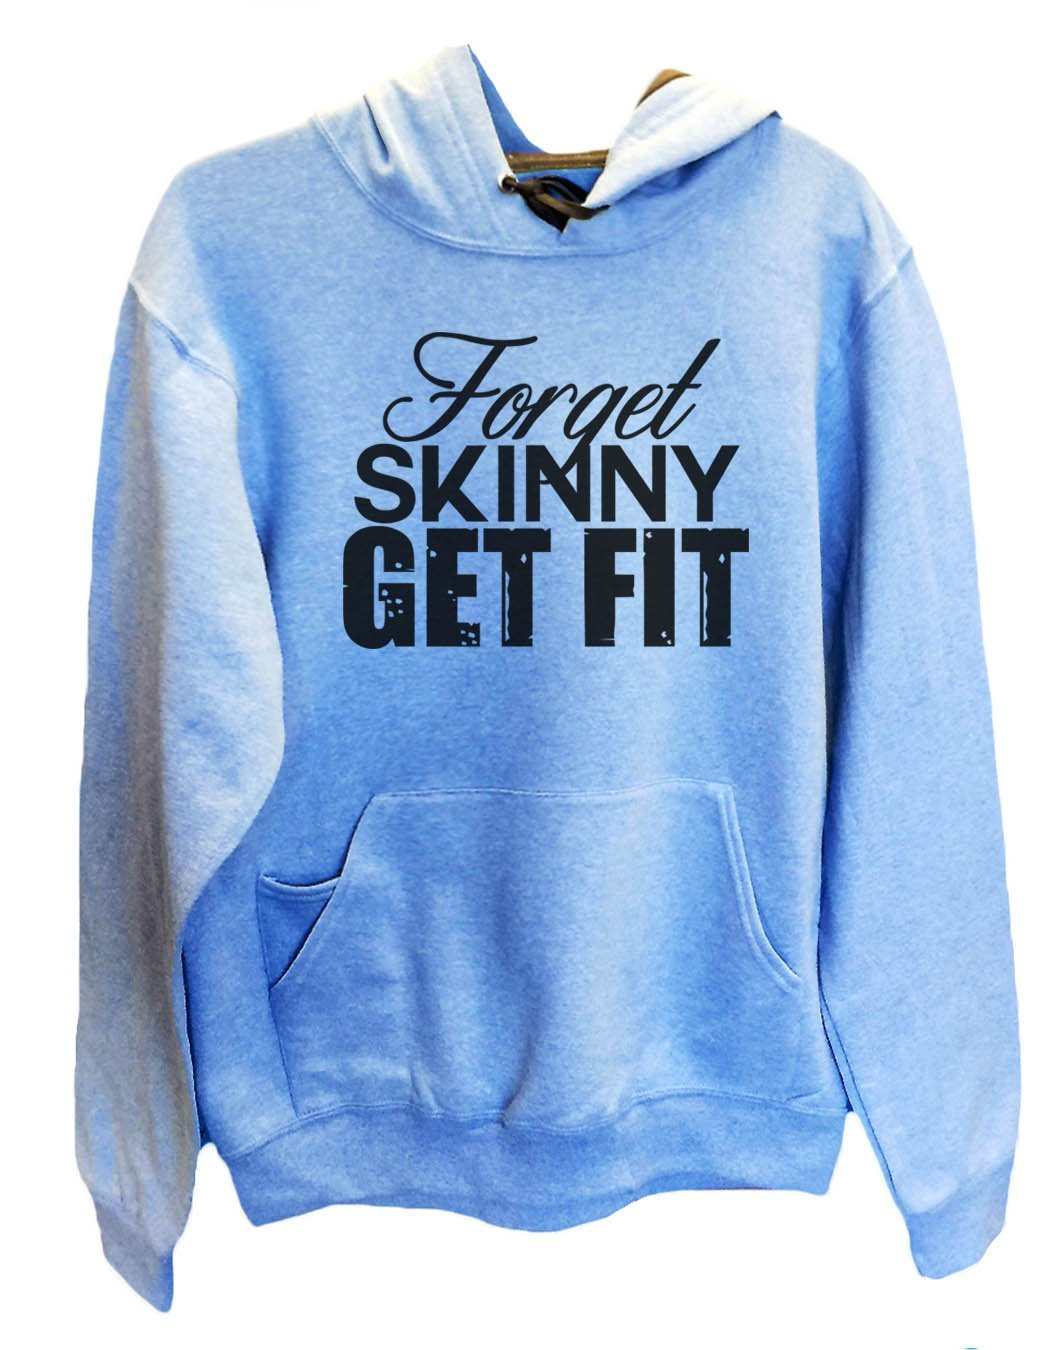 UNISEX HOODIE - Forget Skinny Get Fit - FUNNY MENS AND WOMENS HOODED SWEATSHIRTS - 2130 Funny Shirt Small / North Carolina Blue